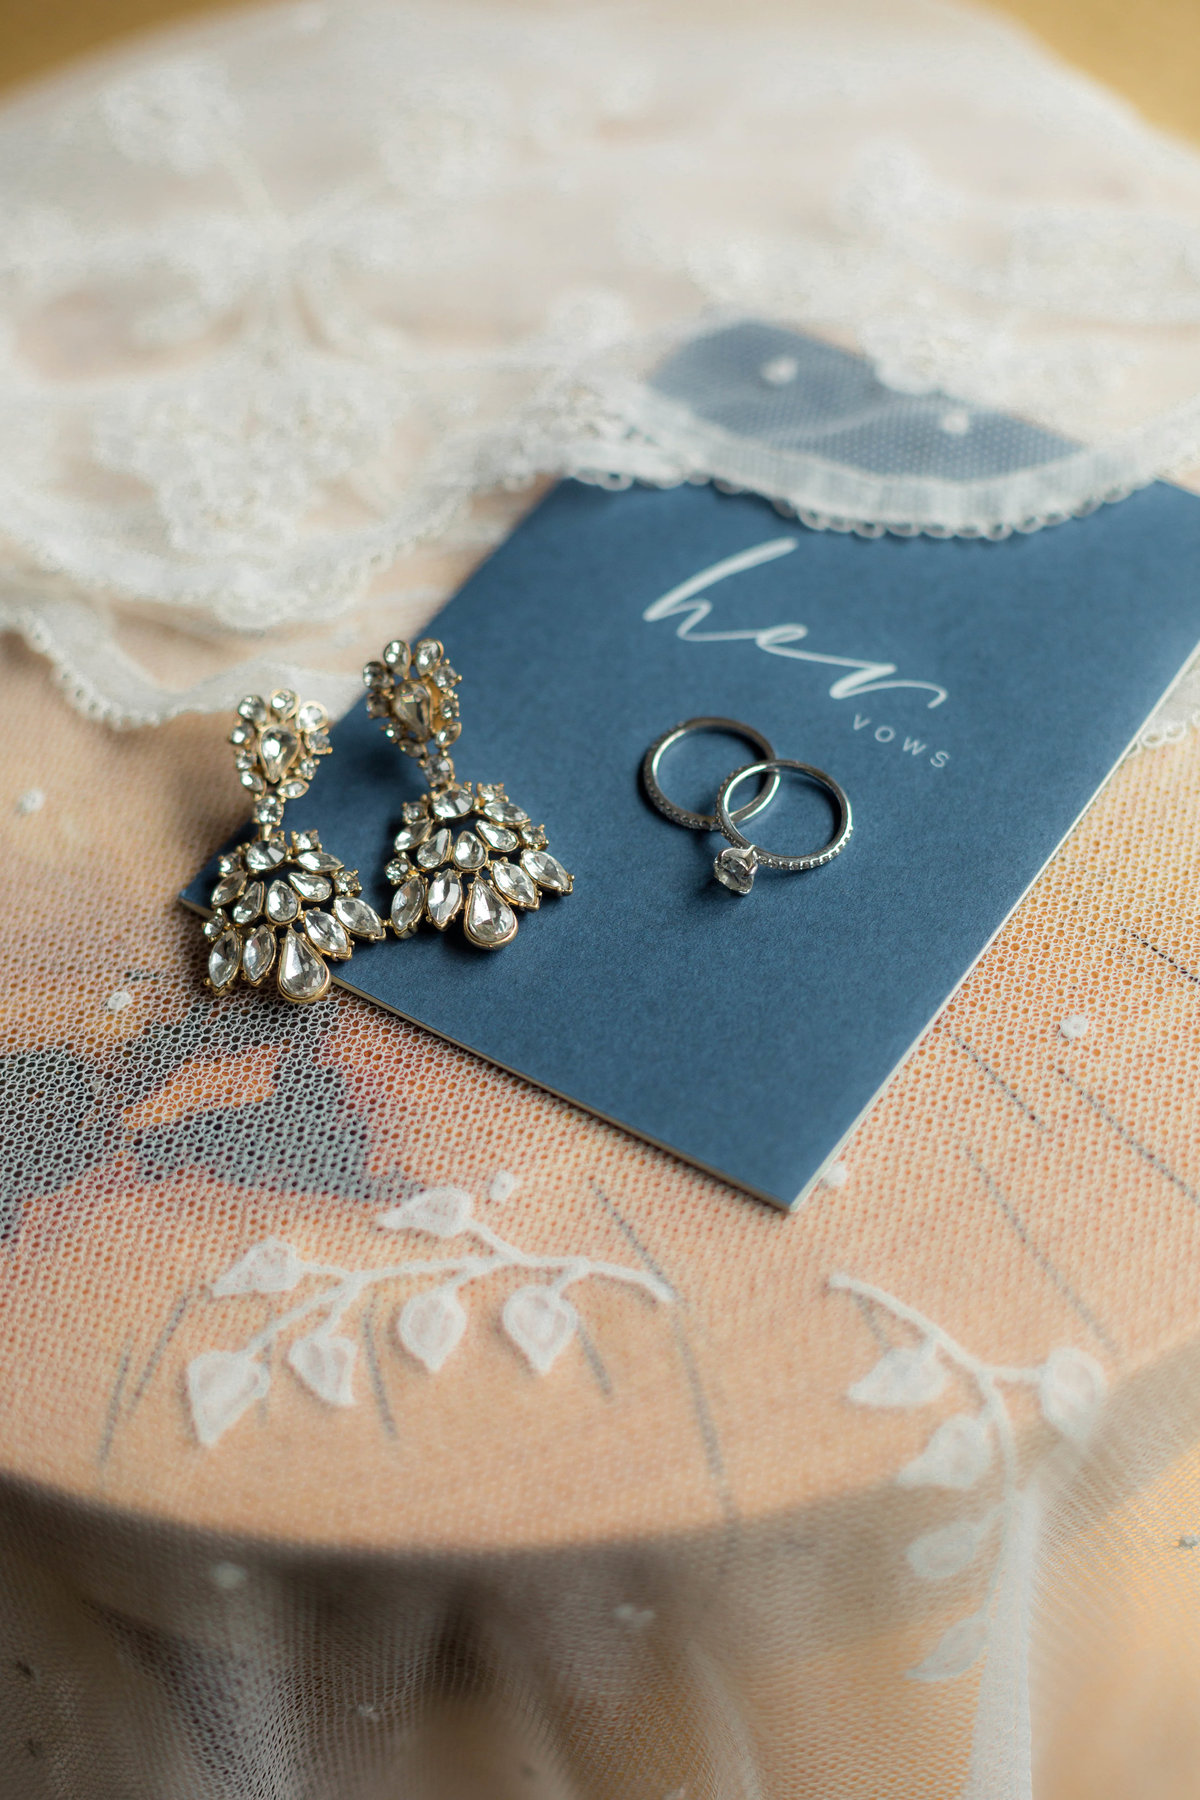 photograph of wedding rings and earrings on vintage veil